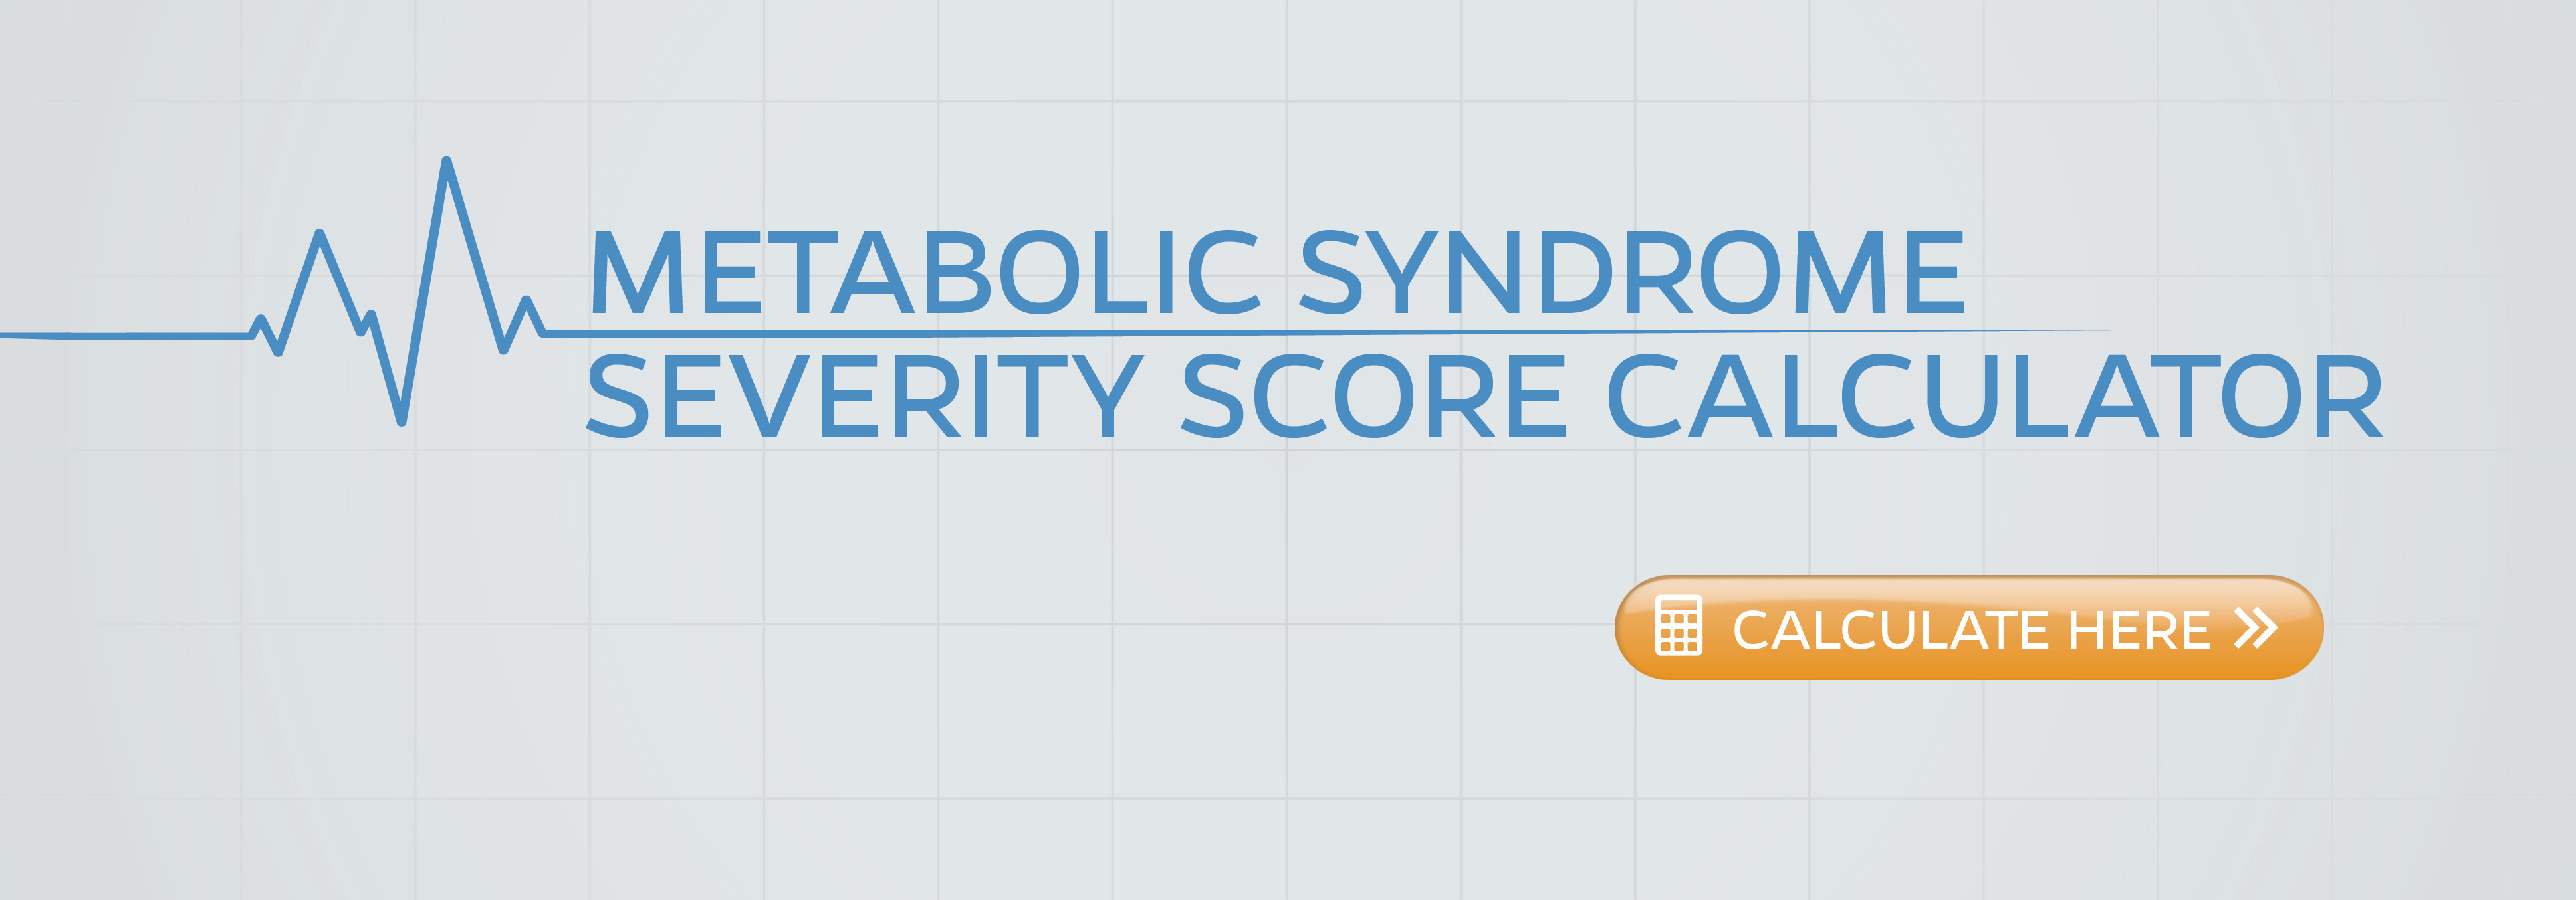 Online Calculator for Metabolic Syndrome Launched